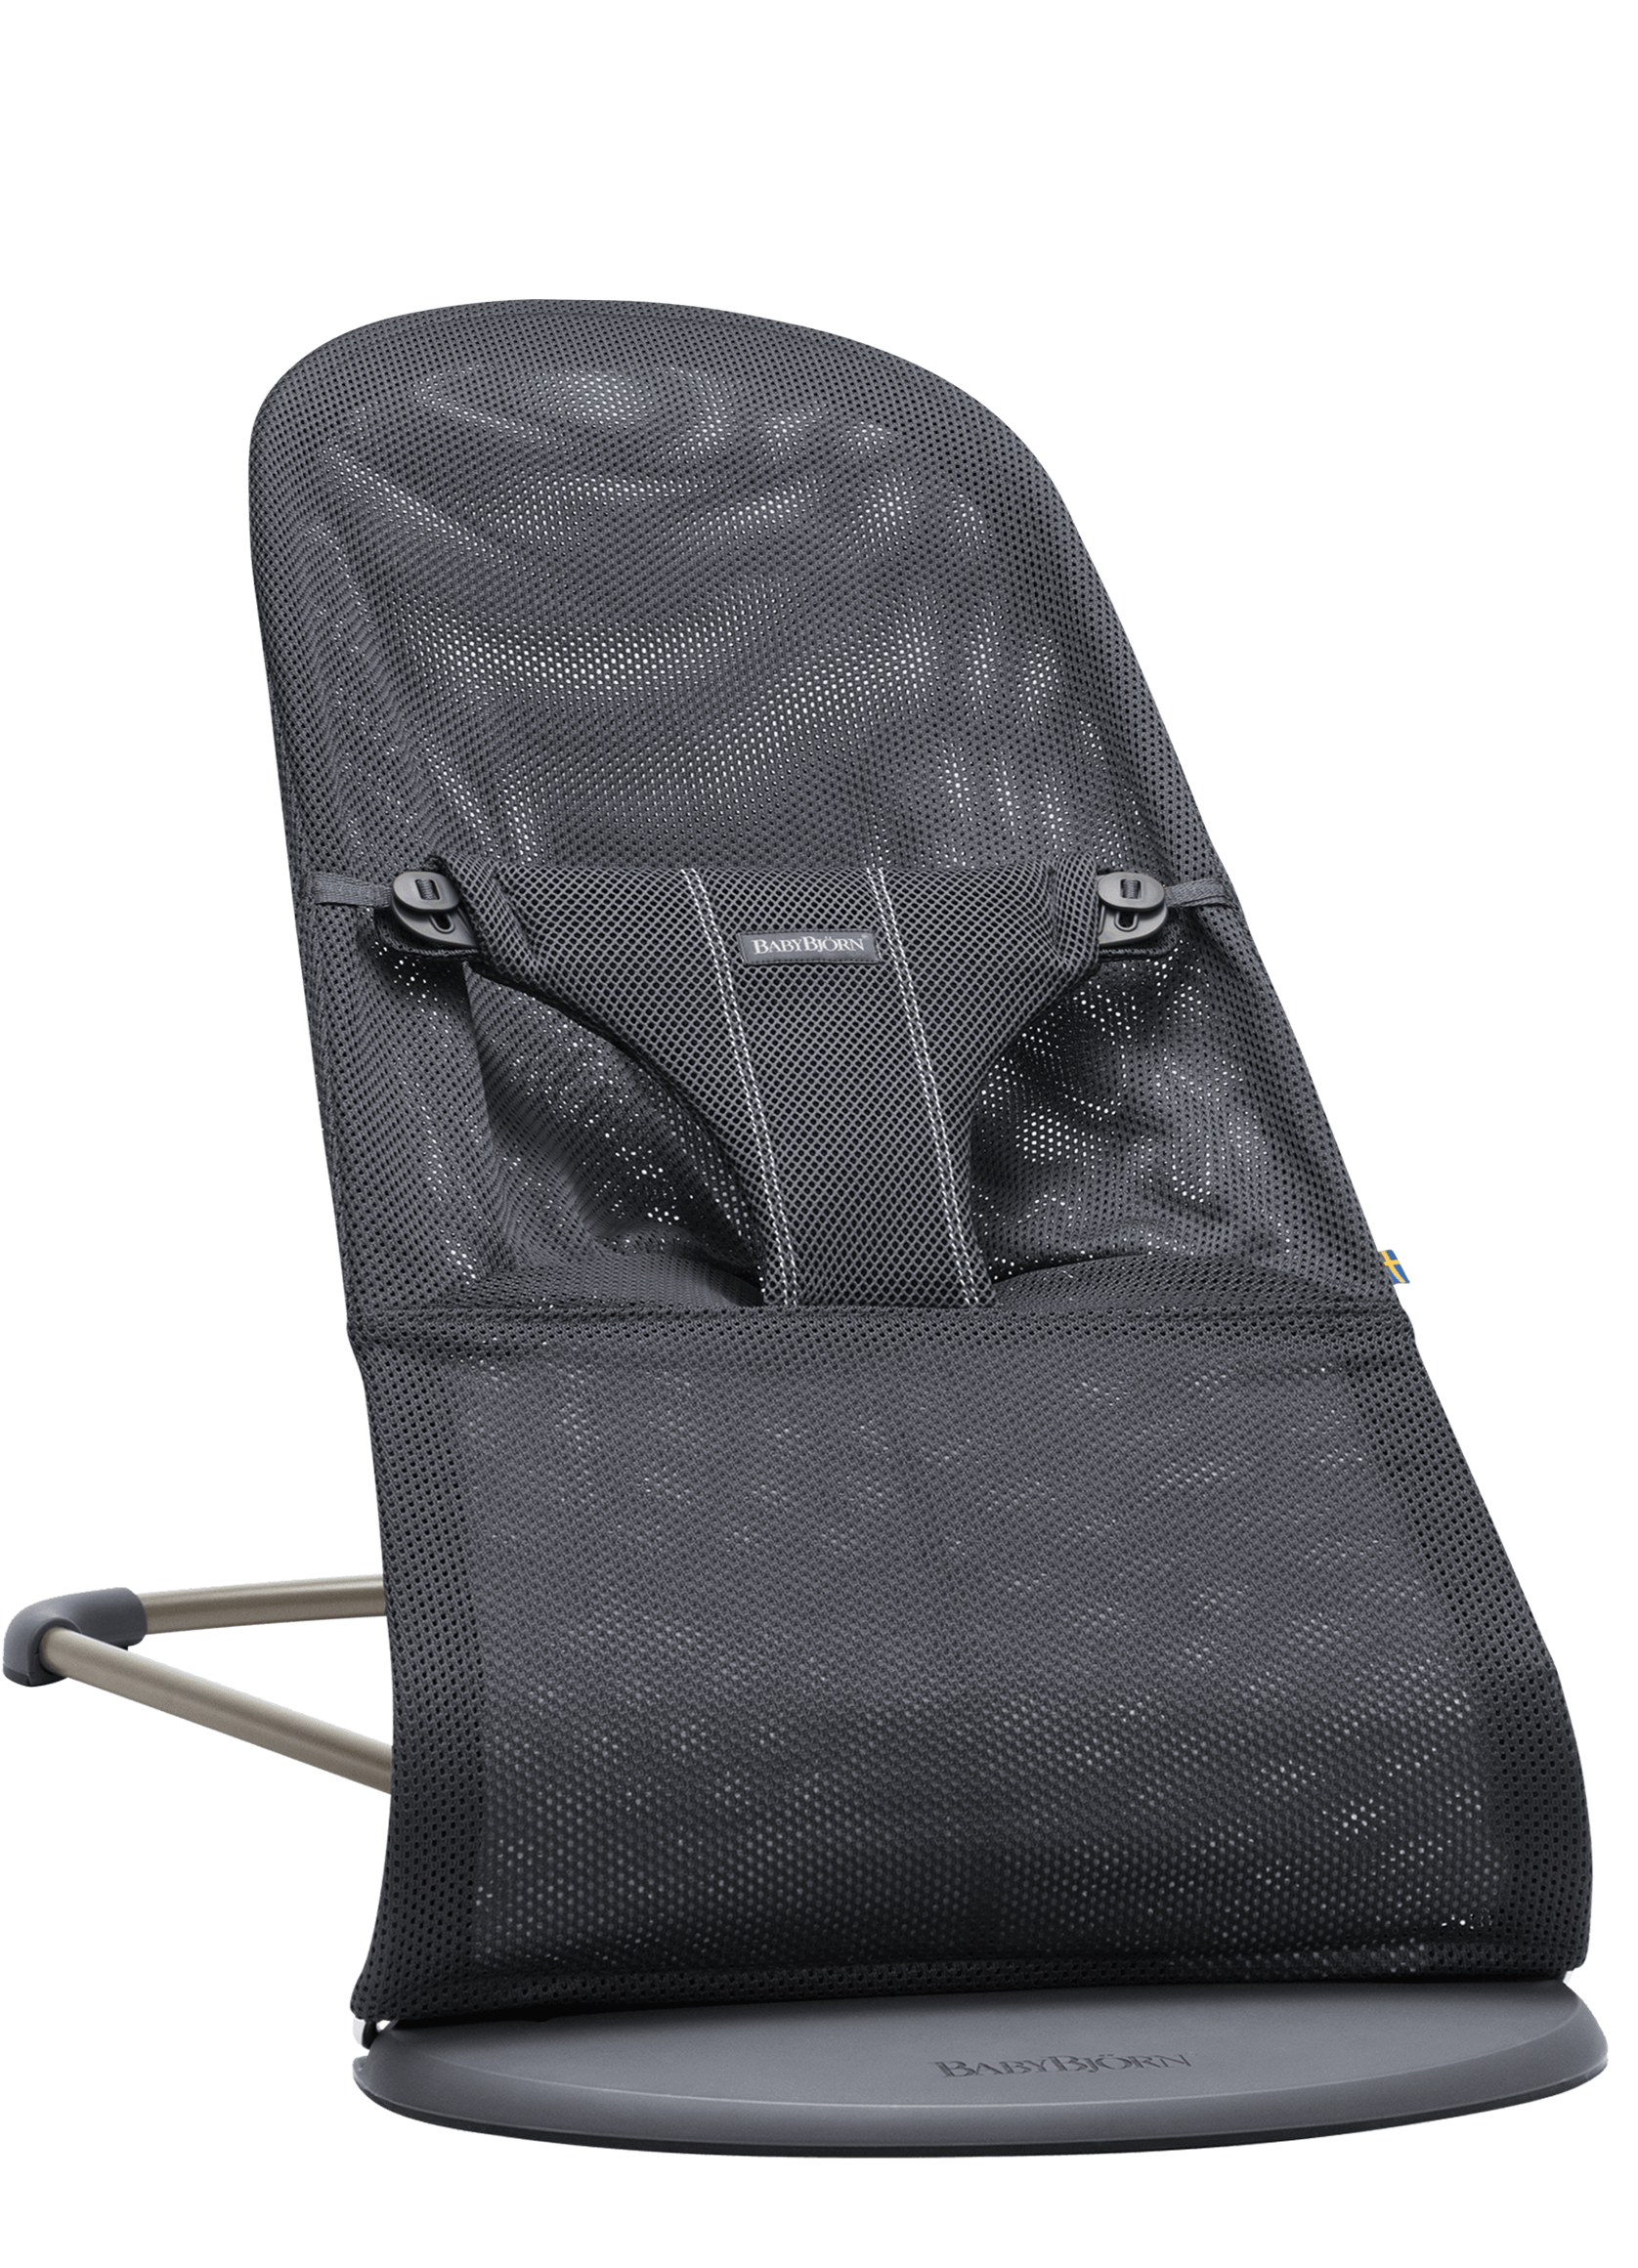 BABYBJORN Bouncer Bliss - Anthracite, Mesh